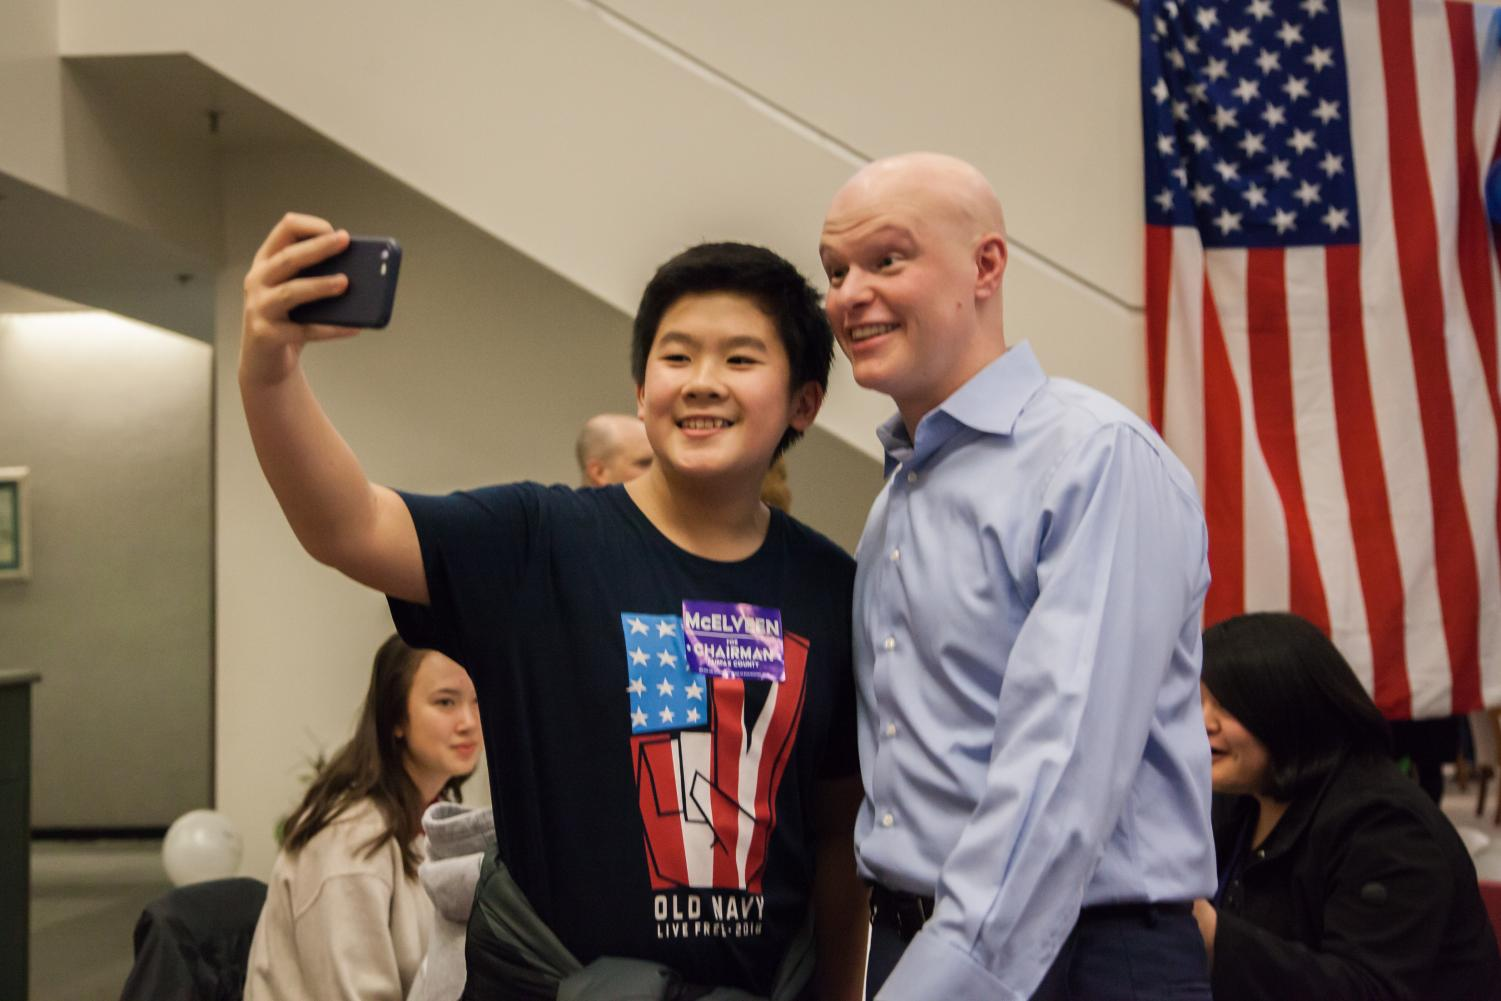 FCPS Board Member Ryan McElveen poses while taking a selfie with a student during his kickoff party. The event gave McElveen the opportunity to get to know his supporters and families from the community better.